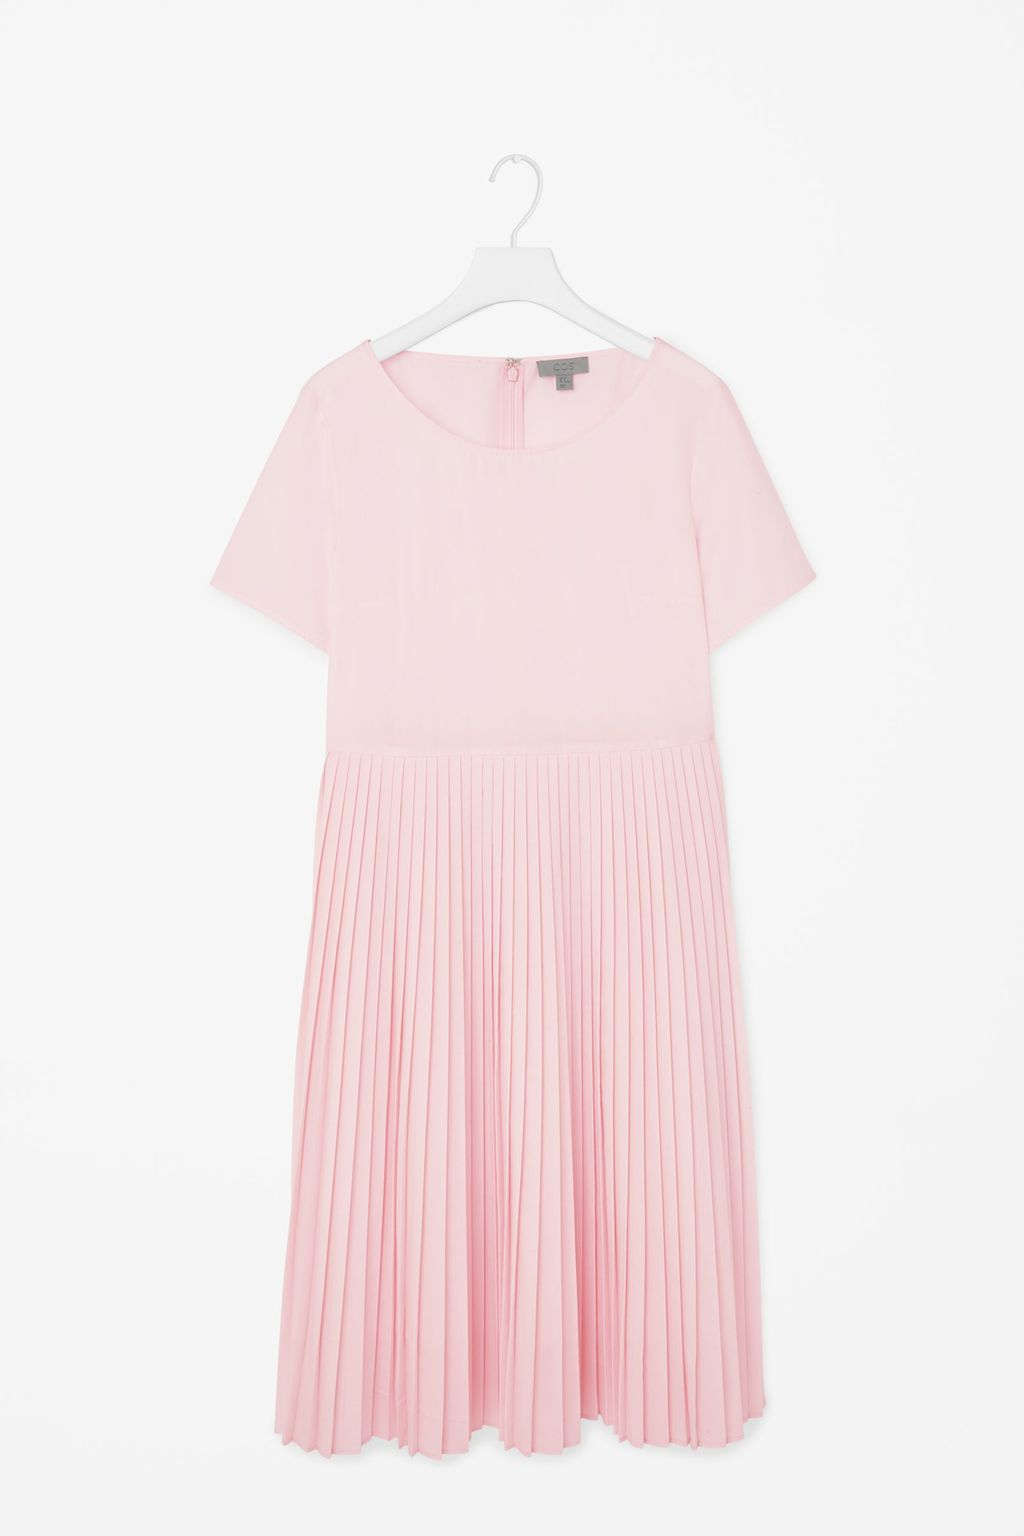 Pleated Poplin Dress - length: mid thigh; neckline: round neck; pattern: plain; predominant colour: blush; occasions: evening, occasion, creative work; fit: fitted at waist & bust; style: fit & flare; fibres: polyester/polyamide - 100%; hip detail: structured pleats at hip; sleeve length: short sleeve; sleeve style: standard; pattern type: fabric; texture group: other - light to midweight; season: s/s 2015